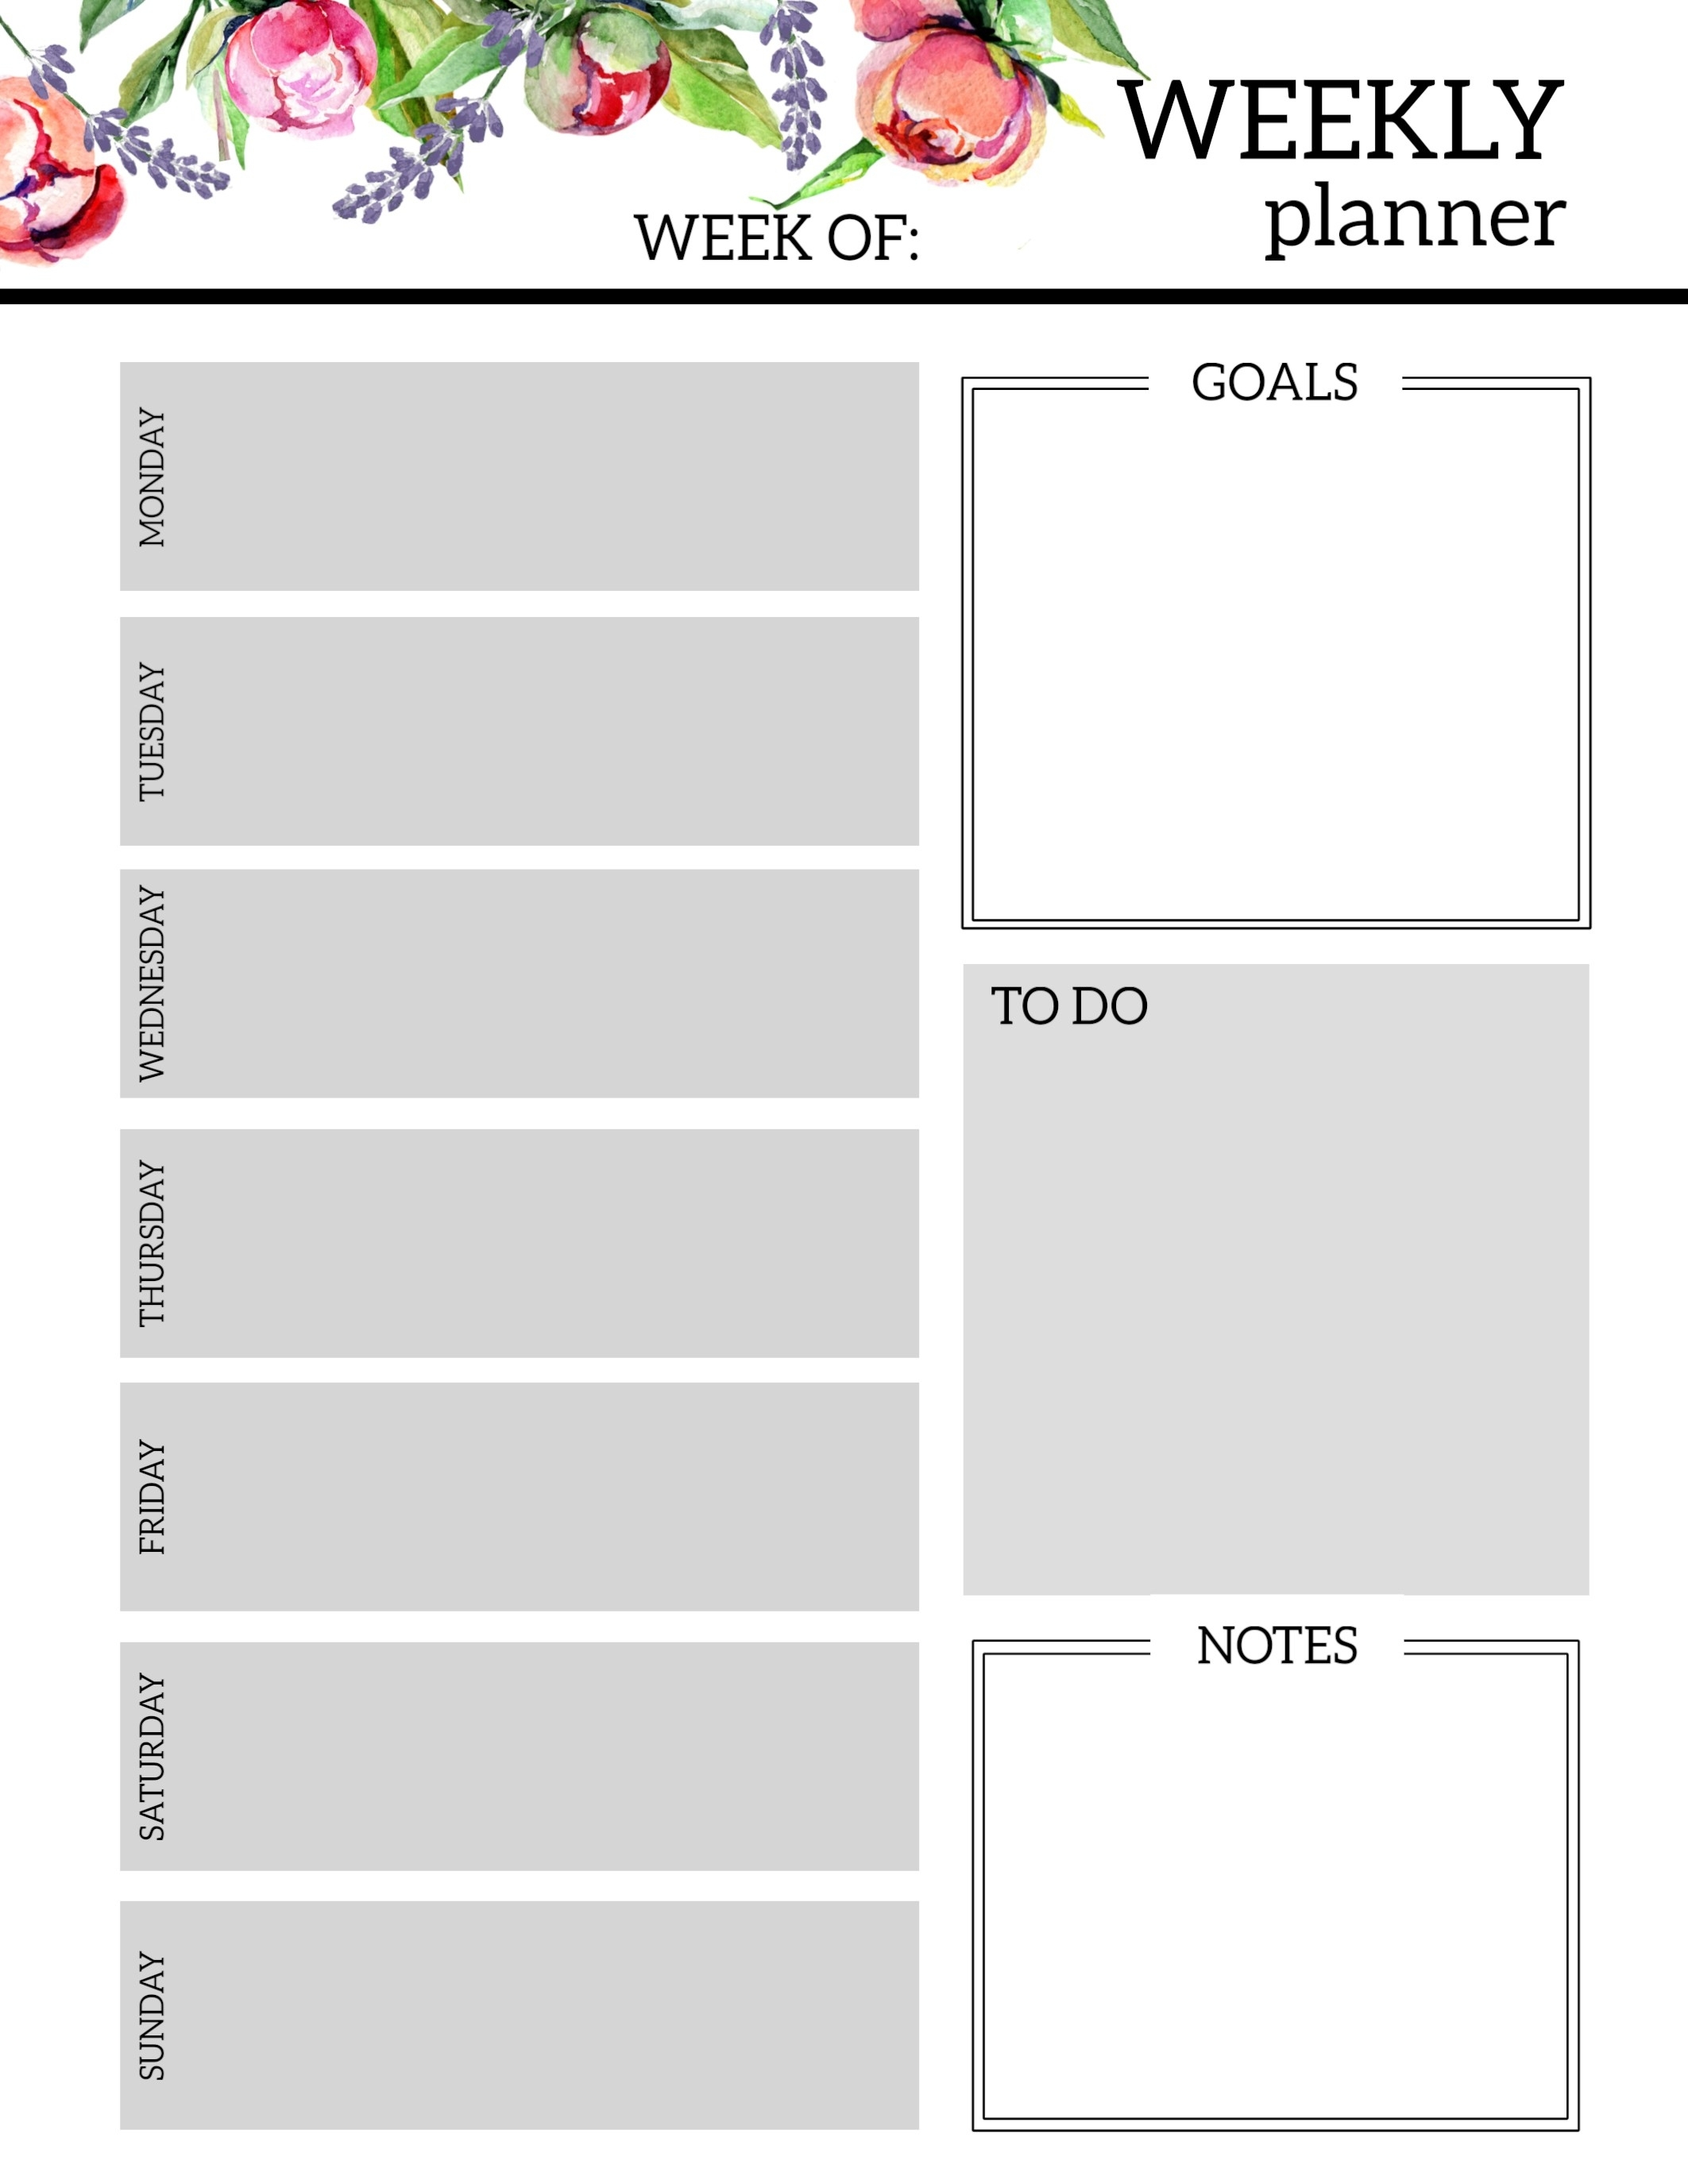 Floral Free Printable Weekly Planner Template - Paper Trail Design pertaining to Free Printable Weekly Planner Calendar Template